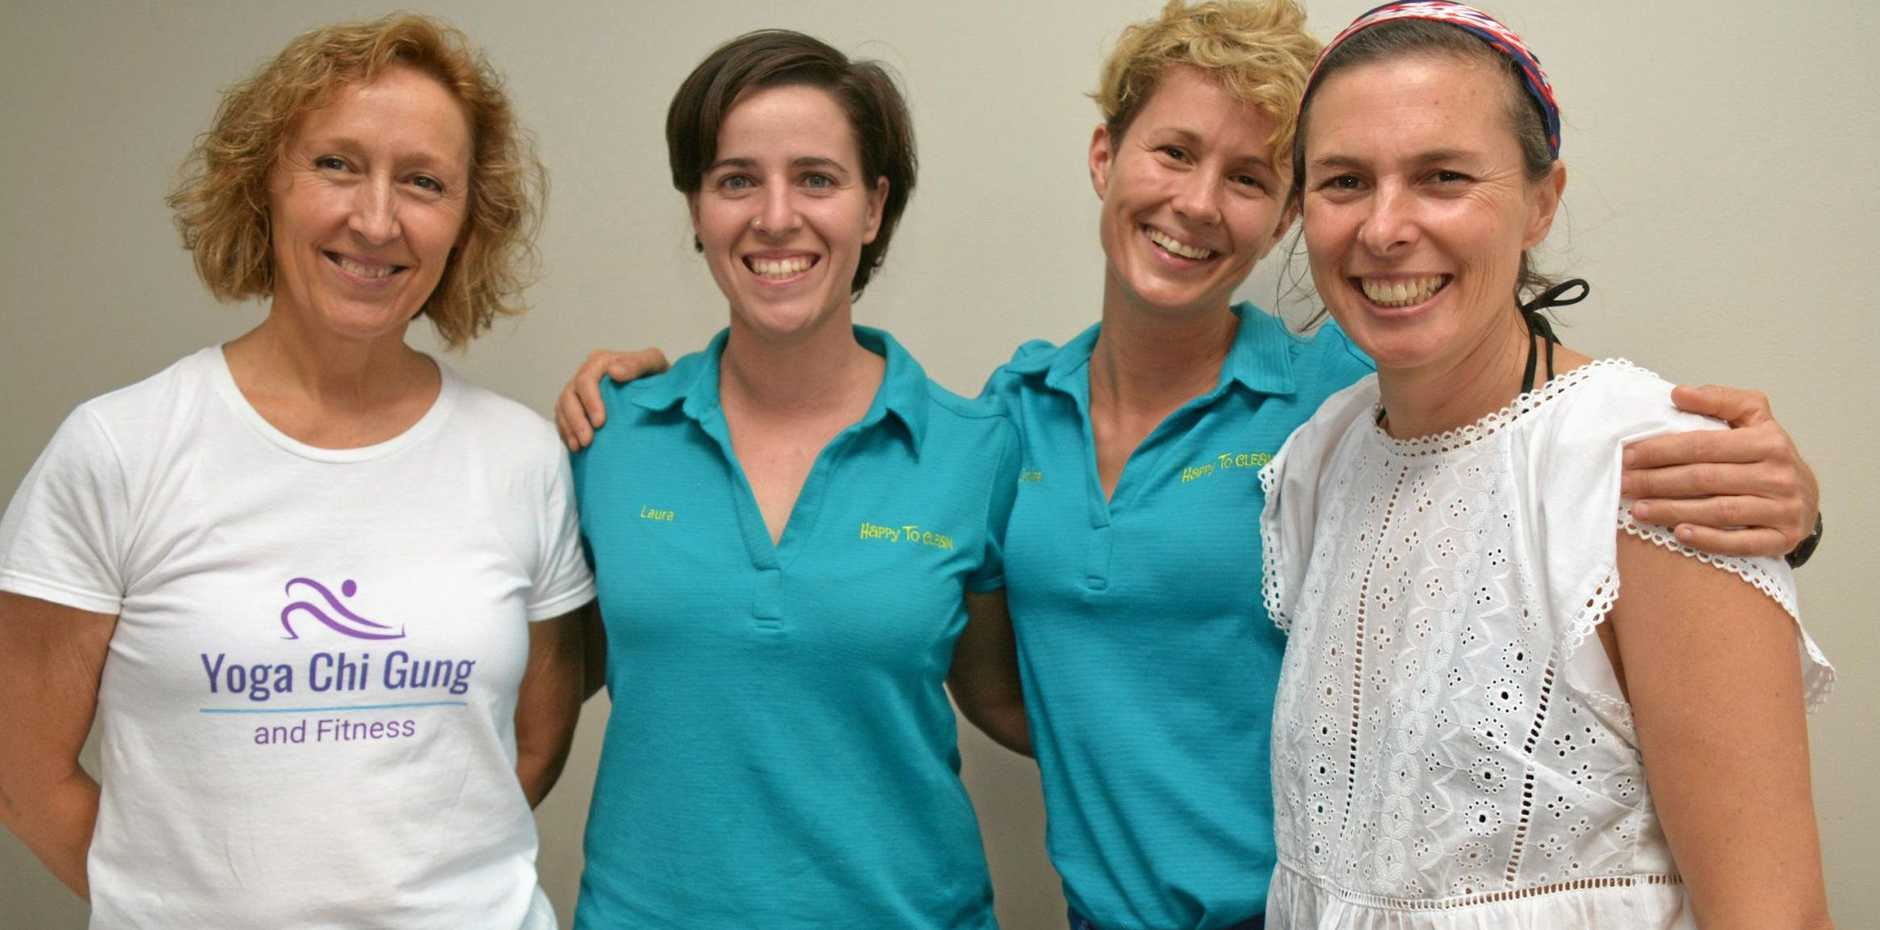 IN BUSINESS: Janine Vukelic, Laura Cobos, Caroline Mudd and Monique De Martin at the Business XL event in Kingaroy on February 5.